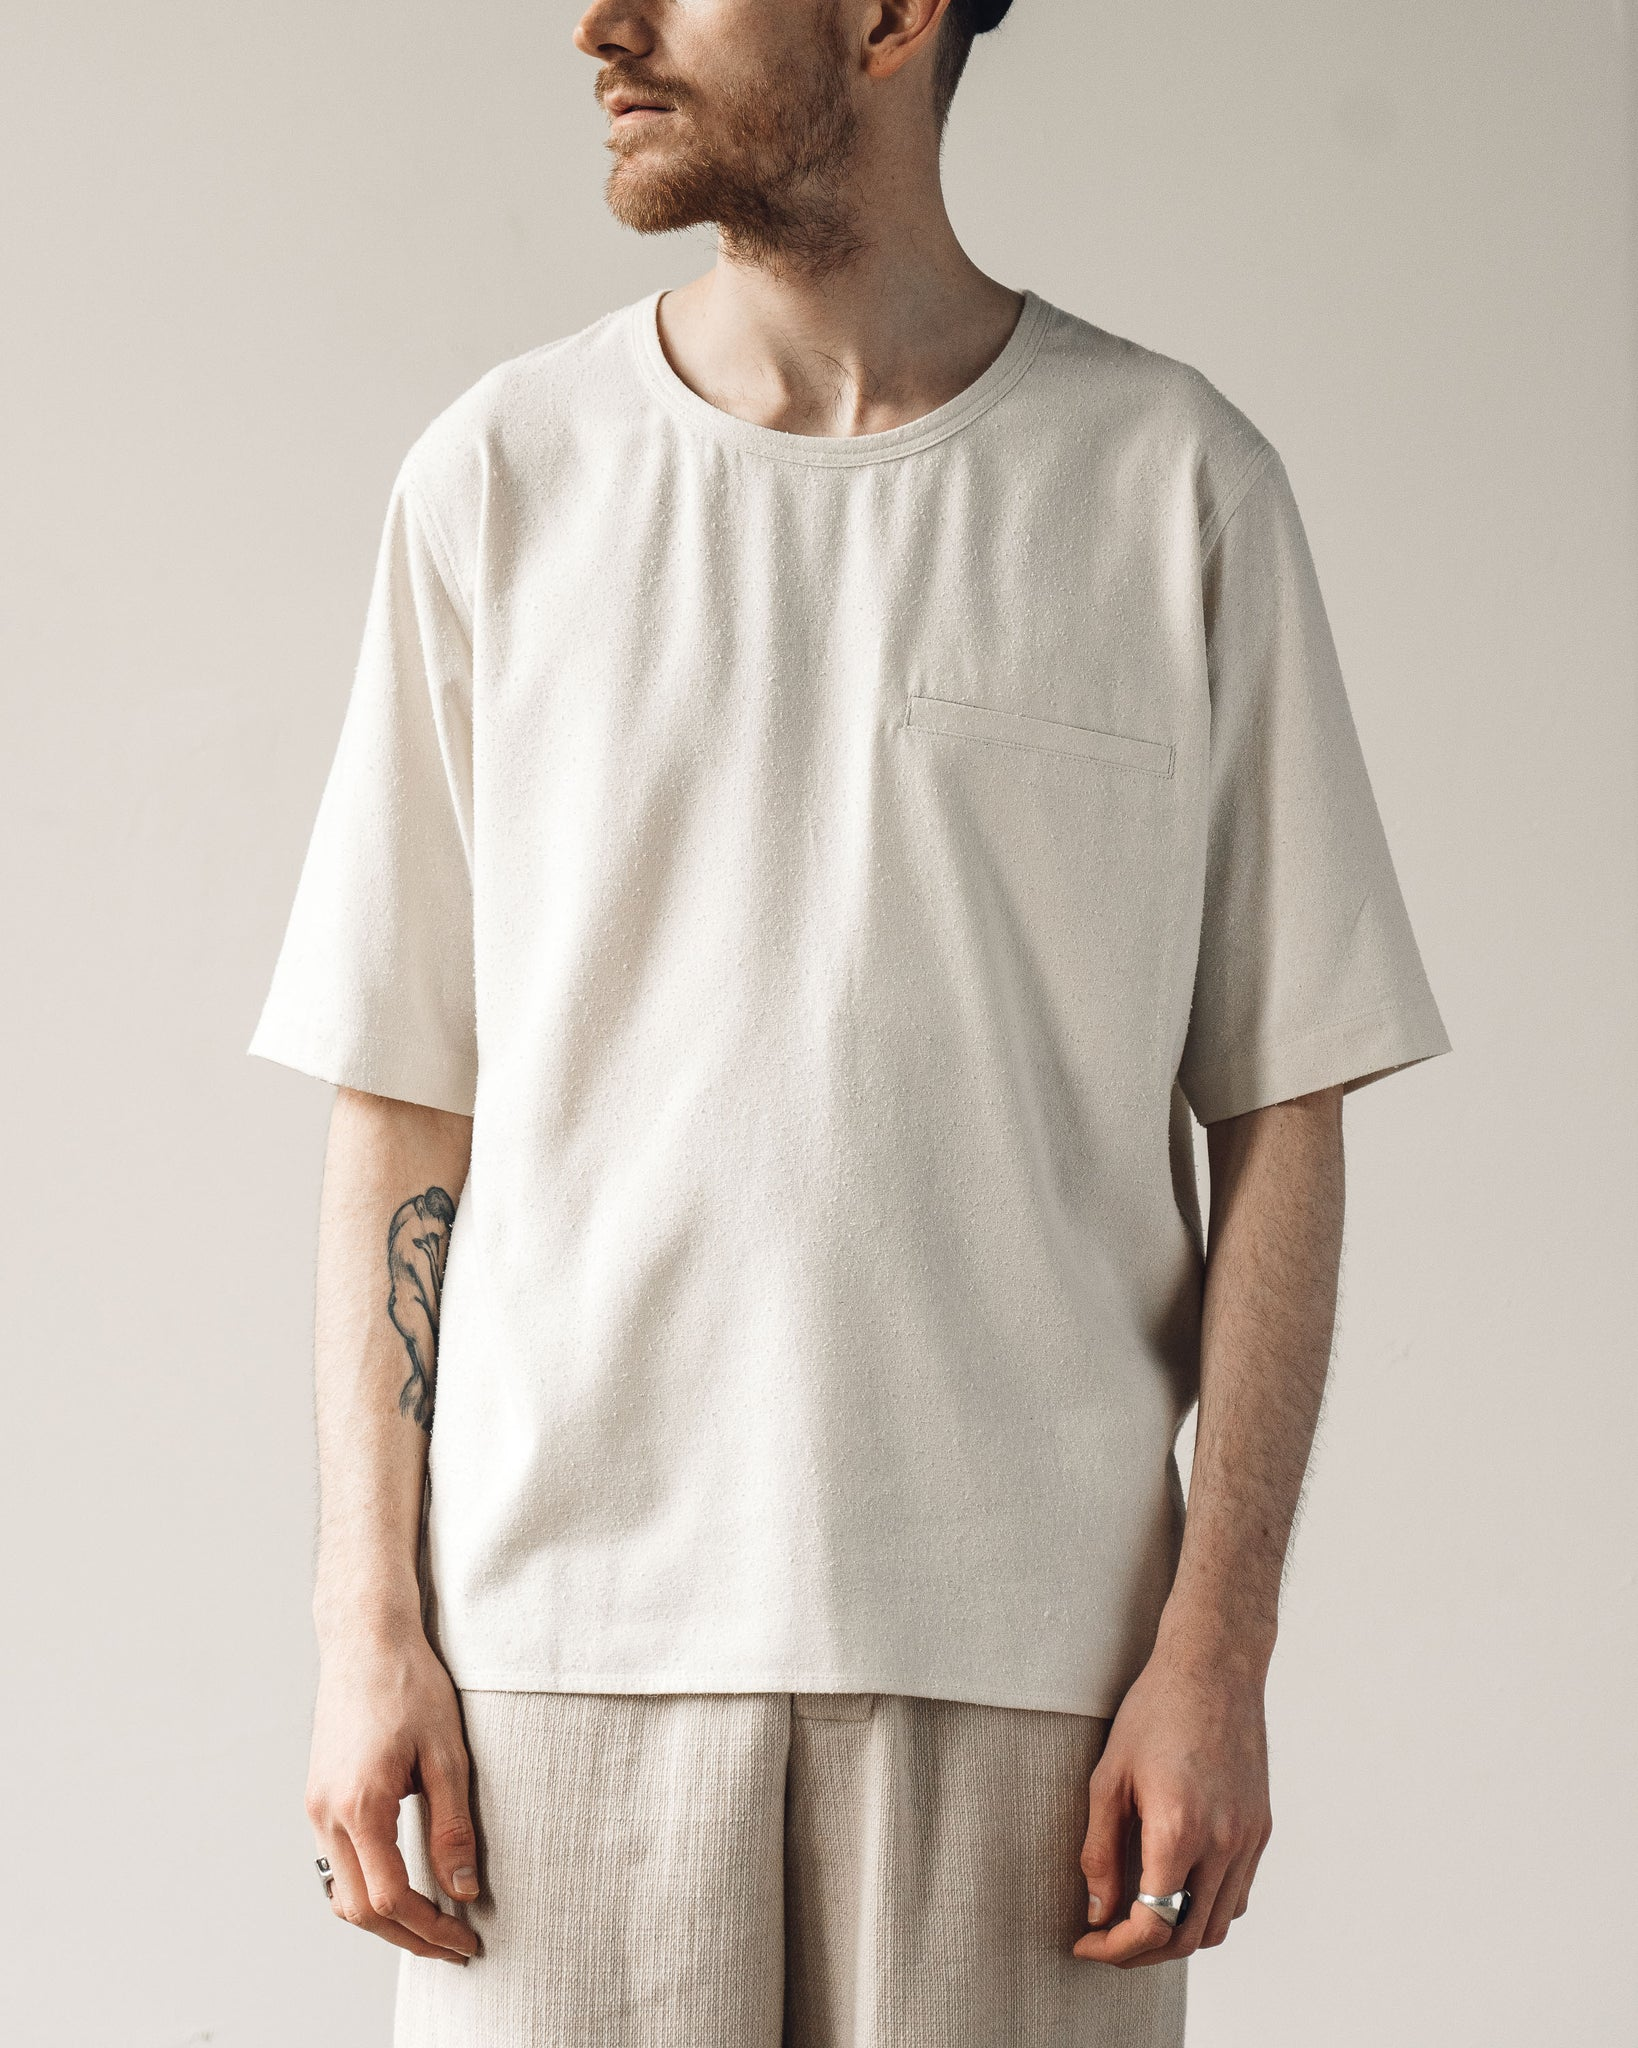 7115 Men's Pocket Tee